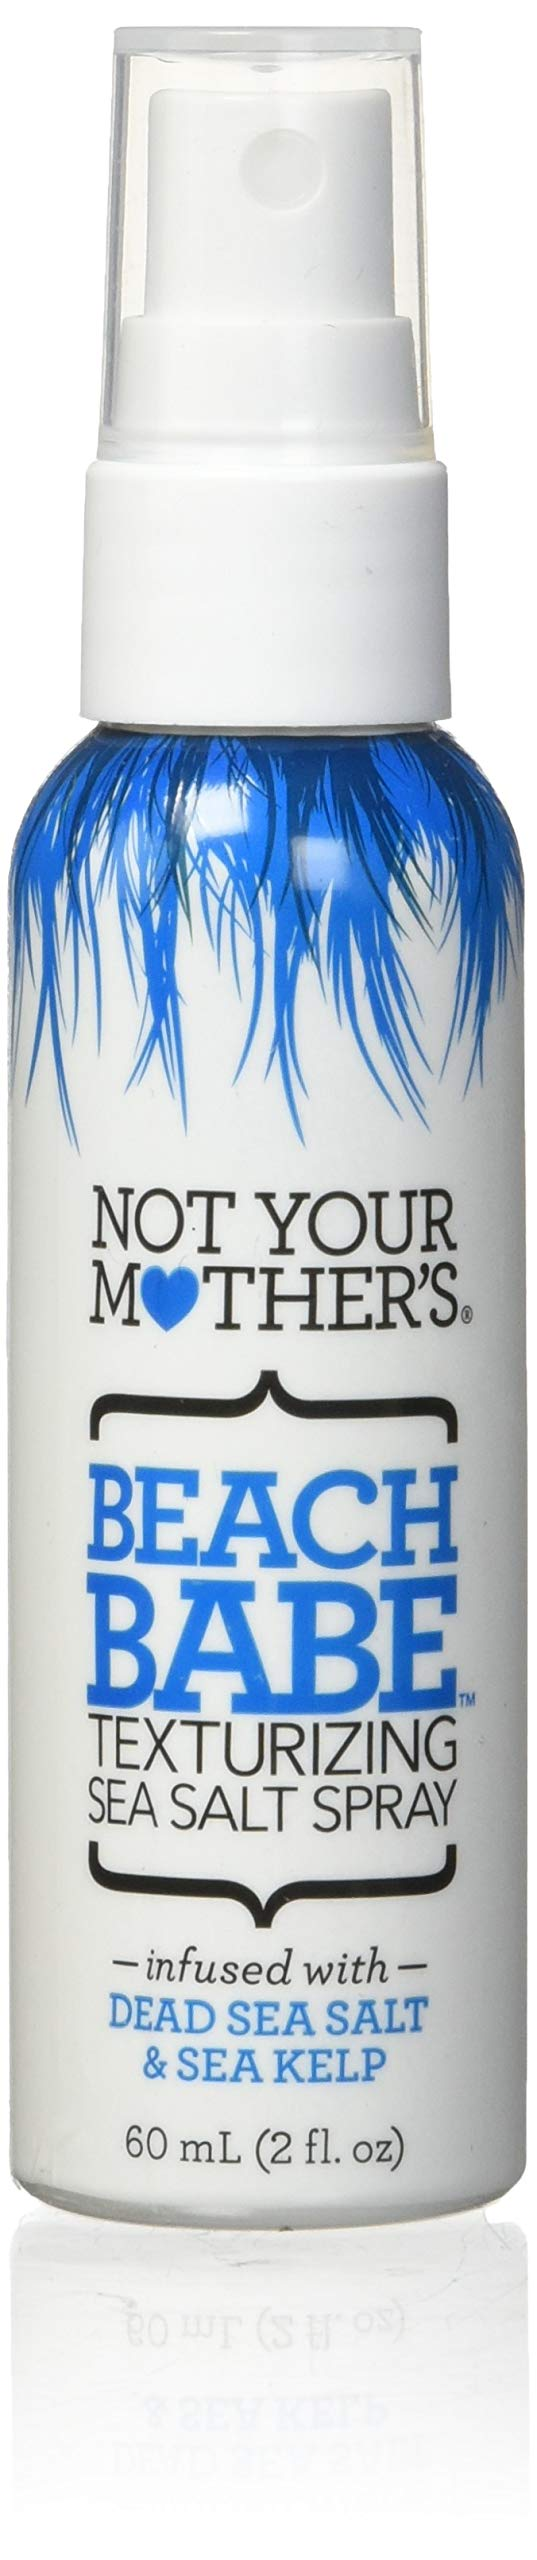 Not Your Mothers not Your Mother's Beach Babe Texturizing Sea Salt Spray - 2 Oz